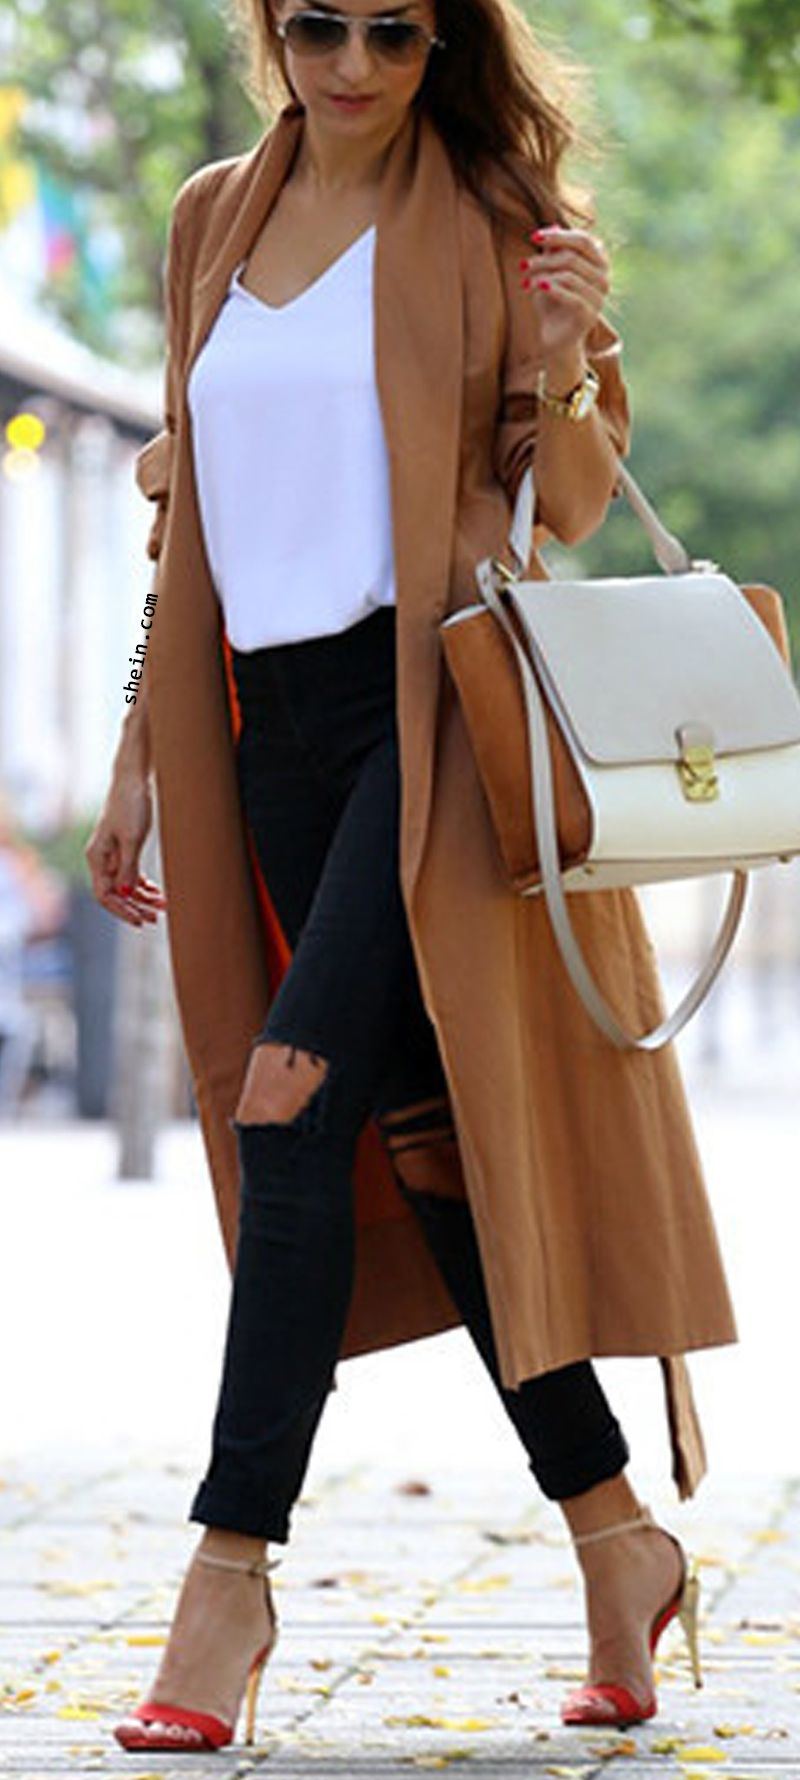 Stylish fall fashionBrown trench coat outfit. Fall